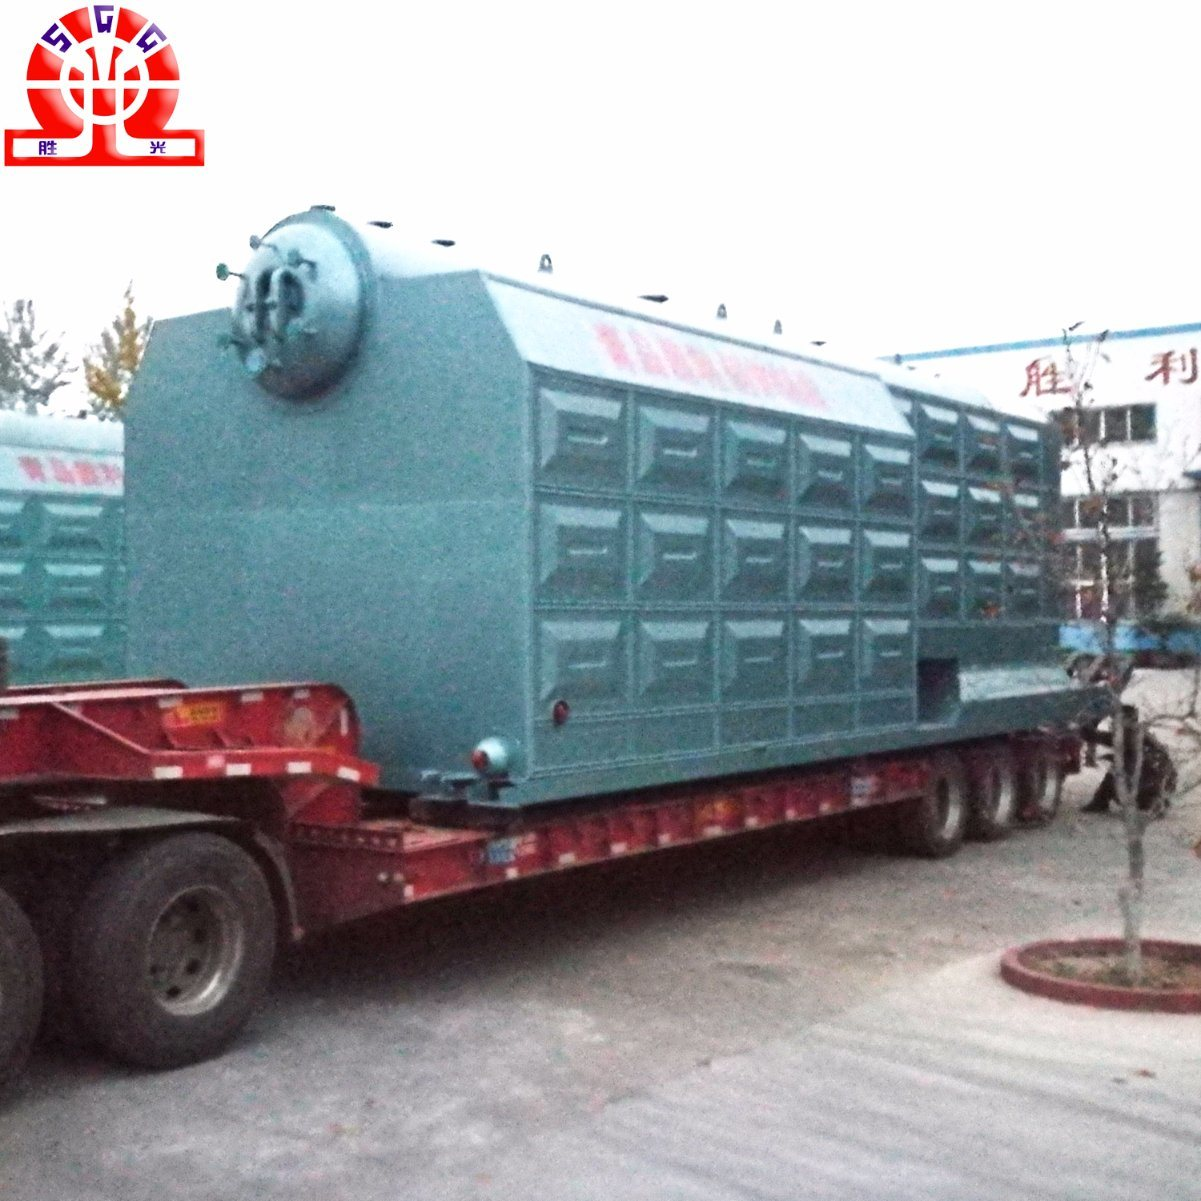 China Low Pressure Sawdust Fired Steam Boiler Equipment - China ...